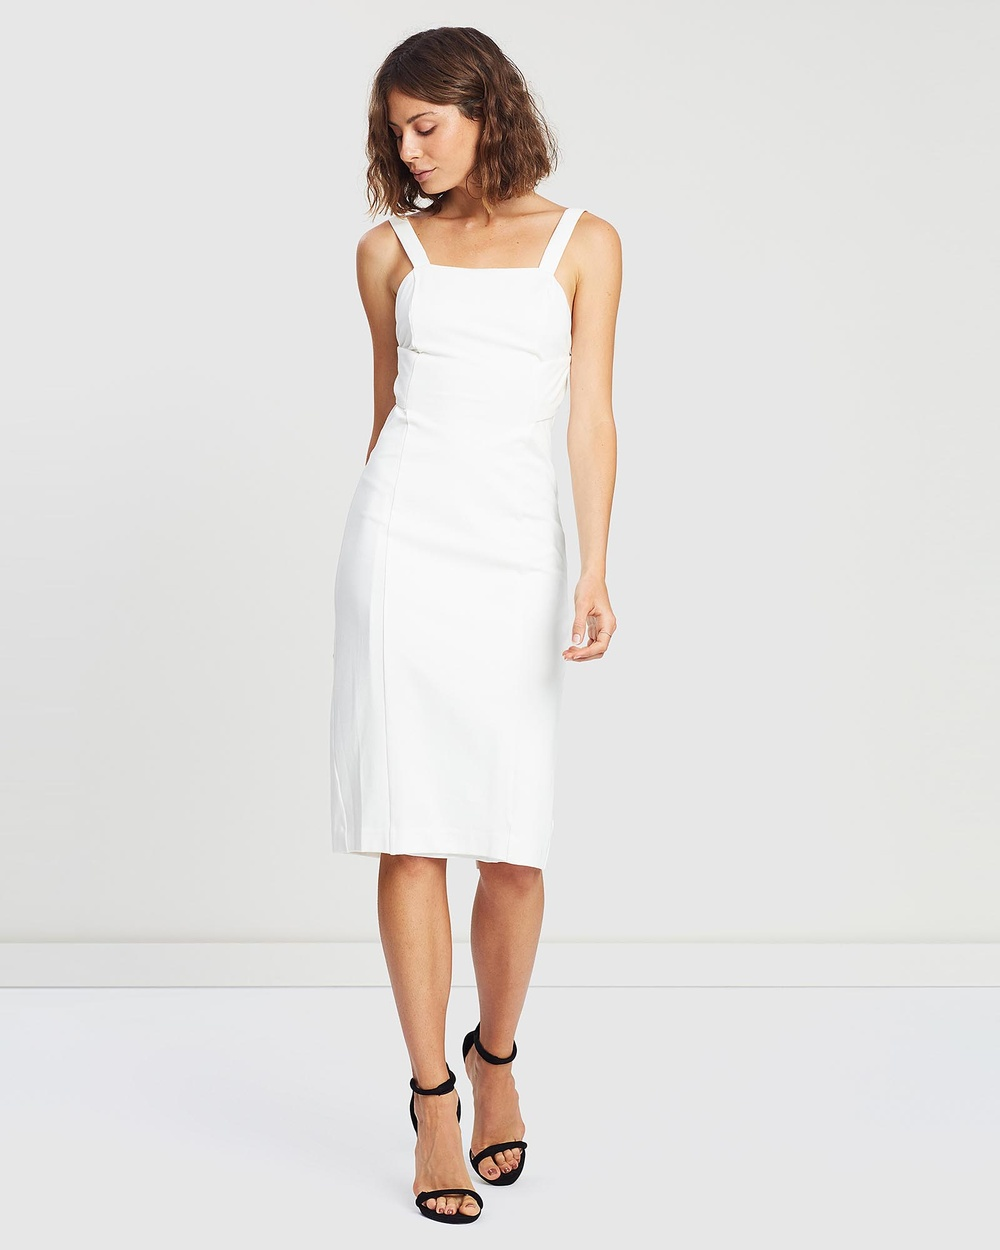 Third Form White Banded Midi Dress